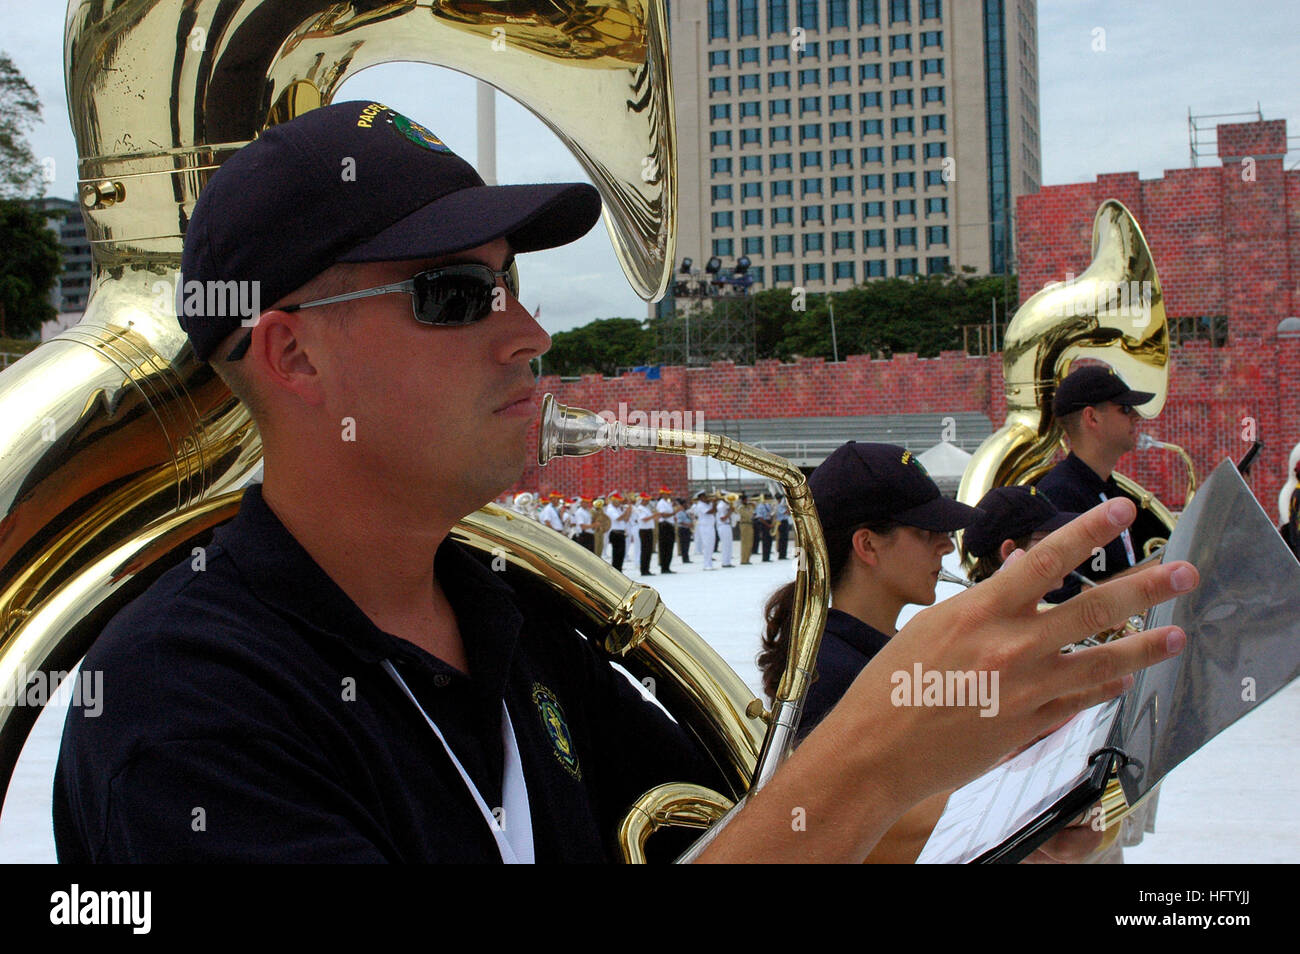 070902-N-5174T-002 KUALA LUMPUR, Malaysia (Sept. 2, 2007) - Musician 1st Class Brian Chaplow and other members of - Stock Image